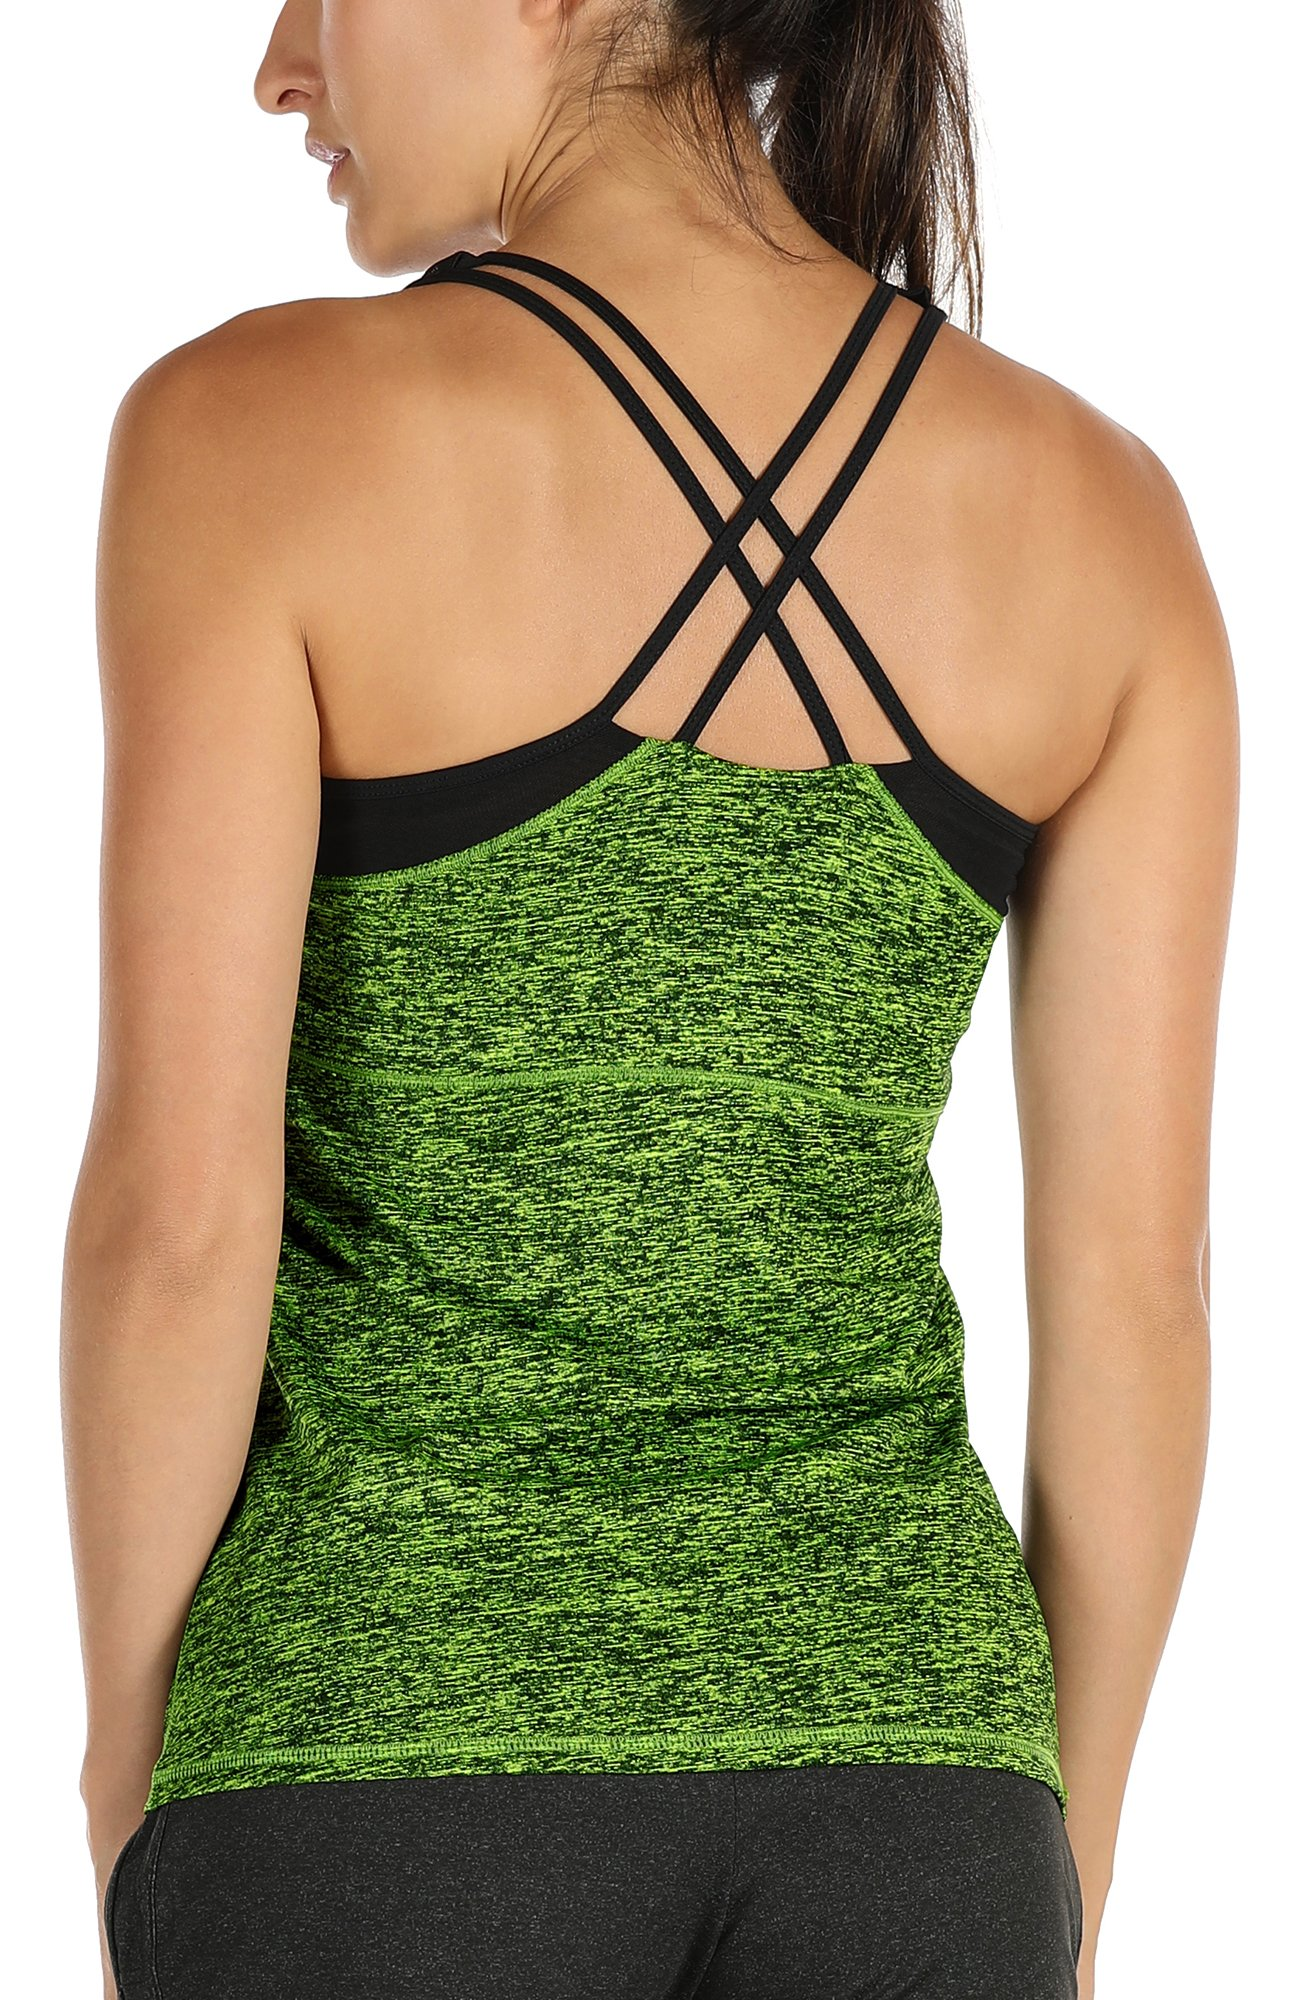 icyzone Women Workout Yoga Spaghetti Strap Racerback Tank Top with Built in Bra(M, Green)